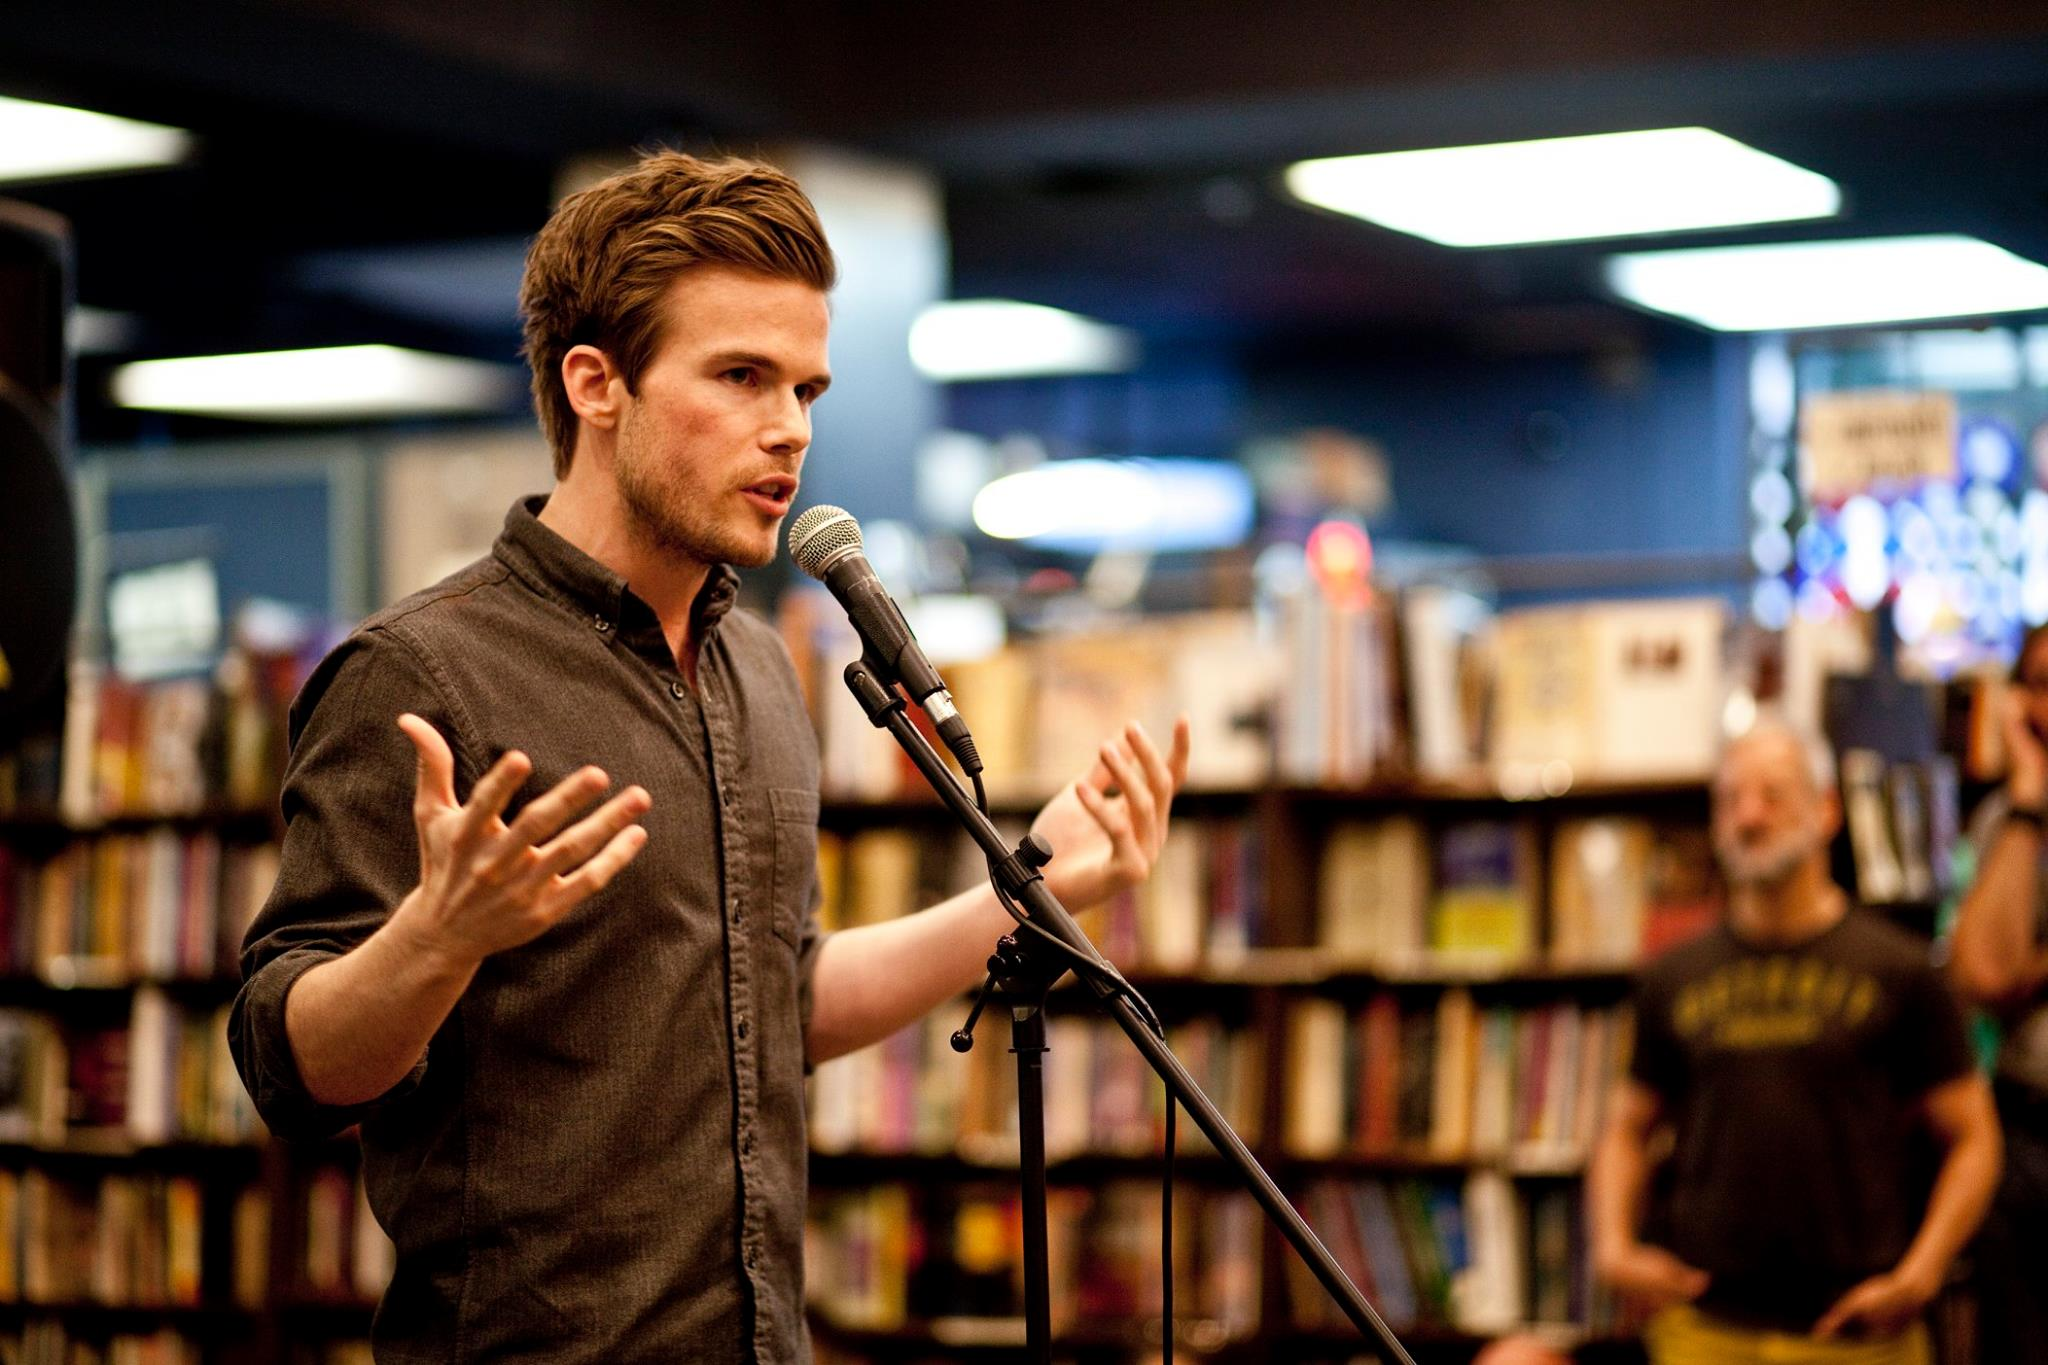 Colin Wright speaking at The Last Bookstore in Los Angeles photo by Light Affect